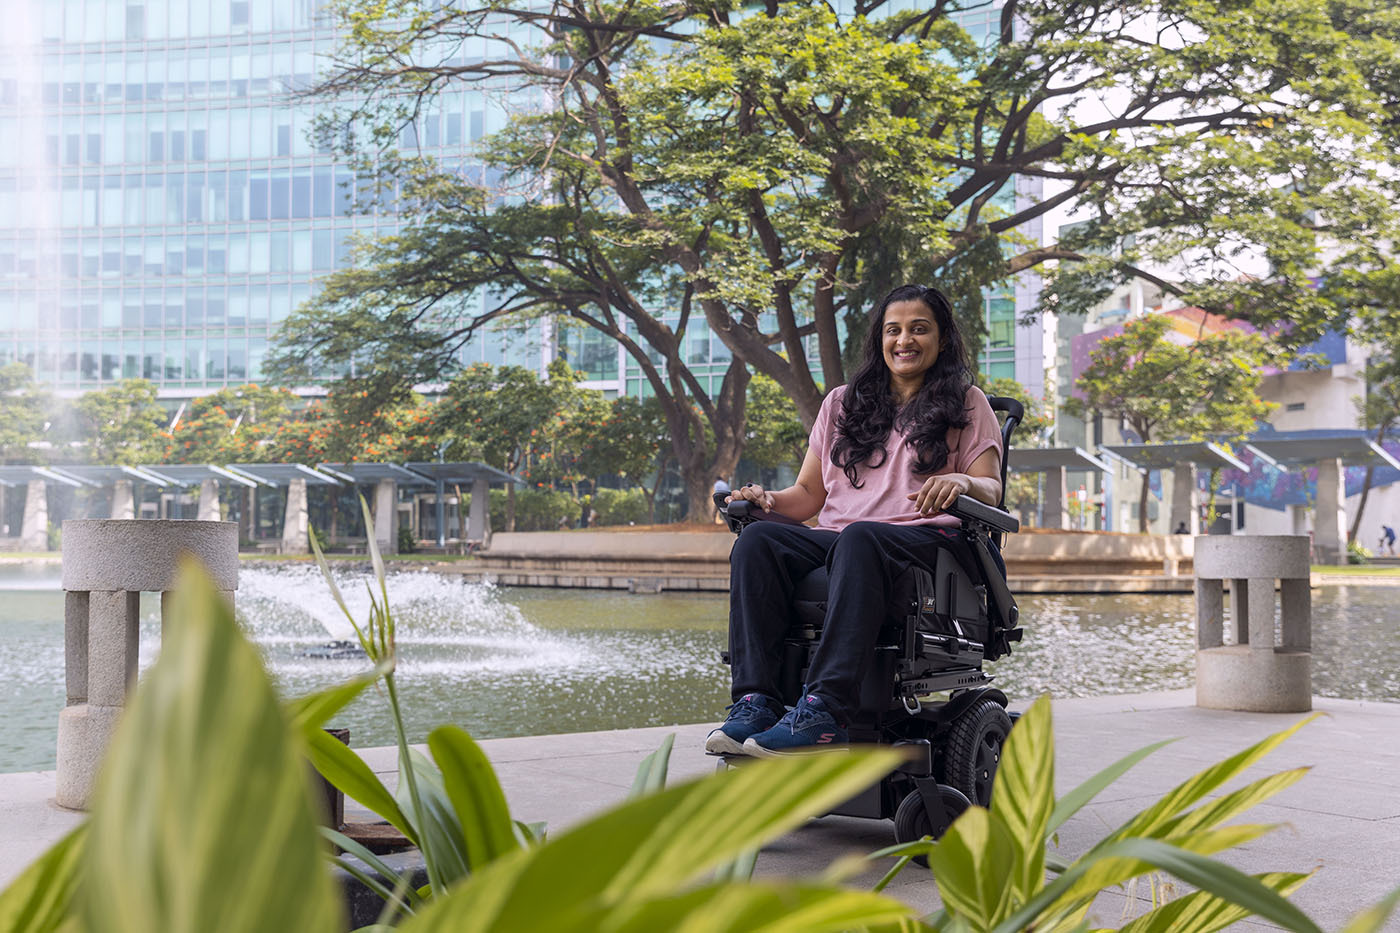 'Raising the bar' on accessibility and inclusion at Amazon - Image 2